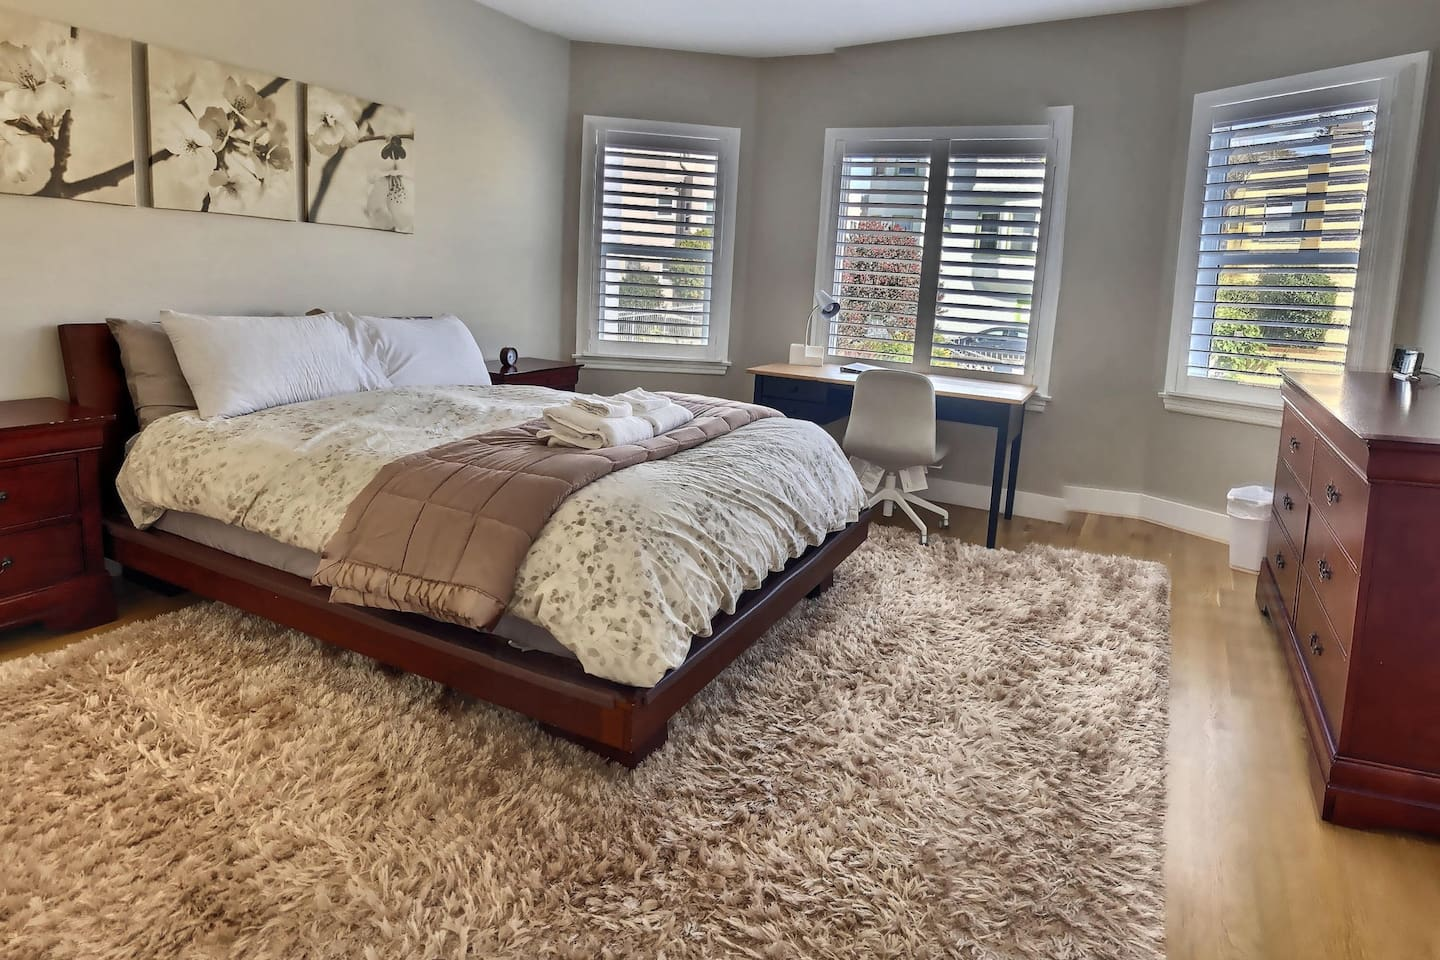 Master bedroom with en-suite private bath, and walk-in closet.